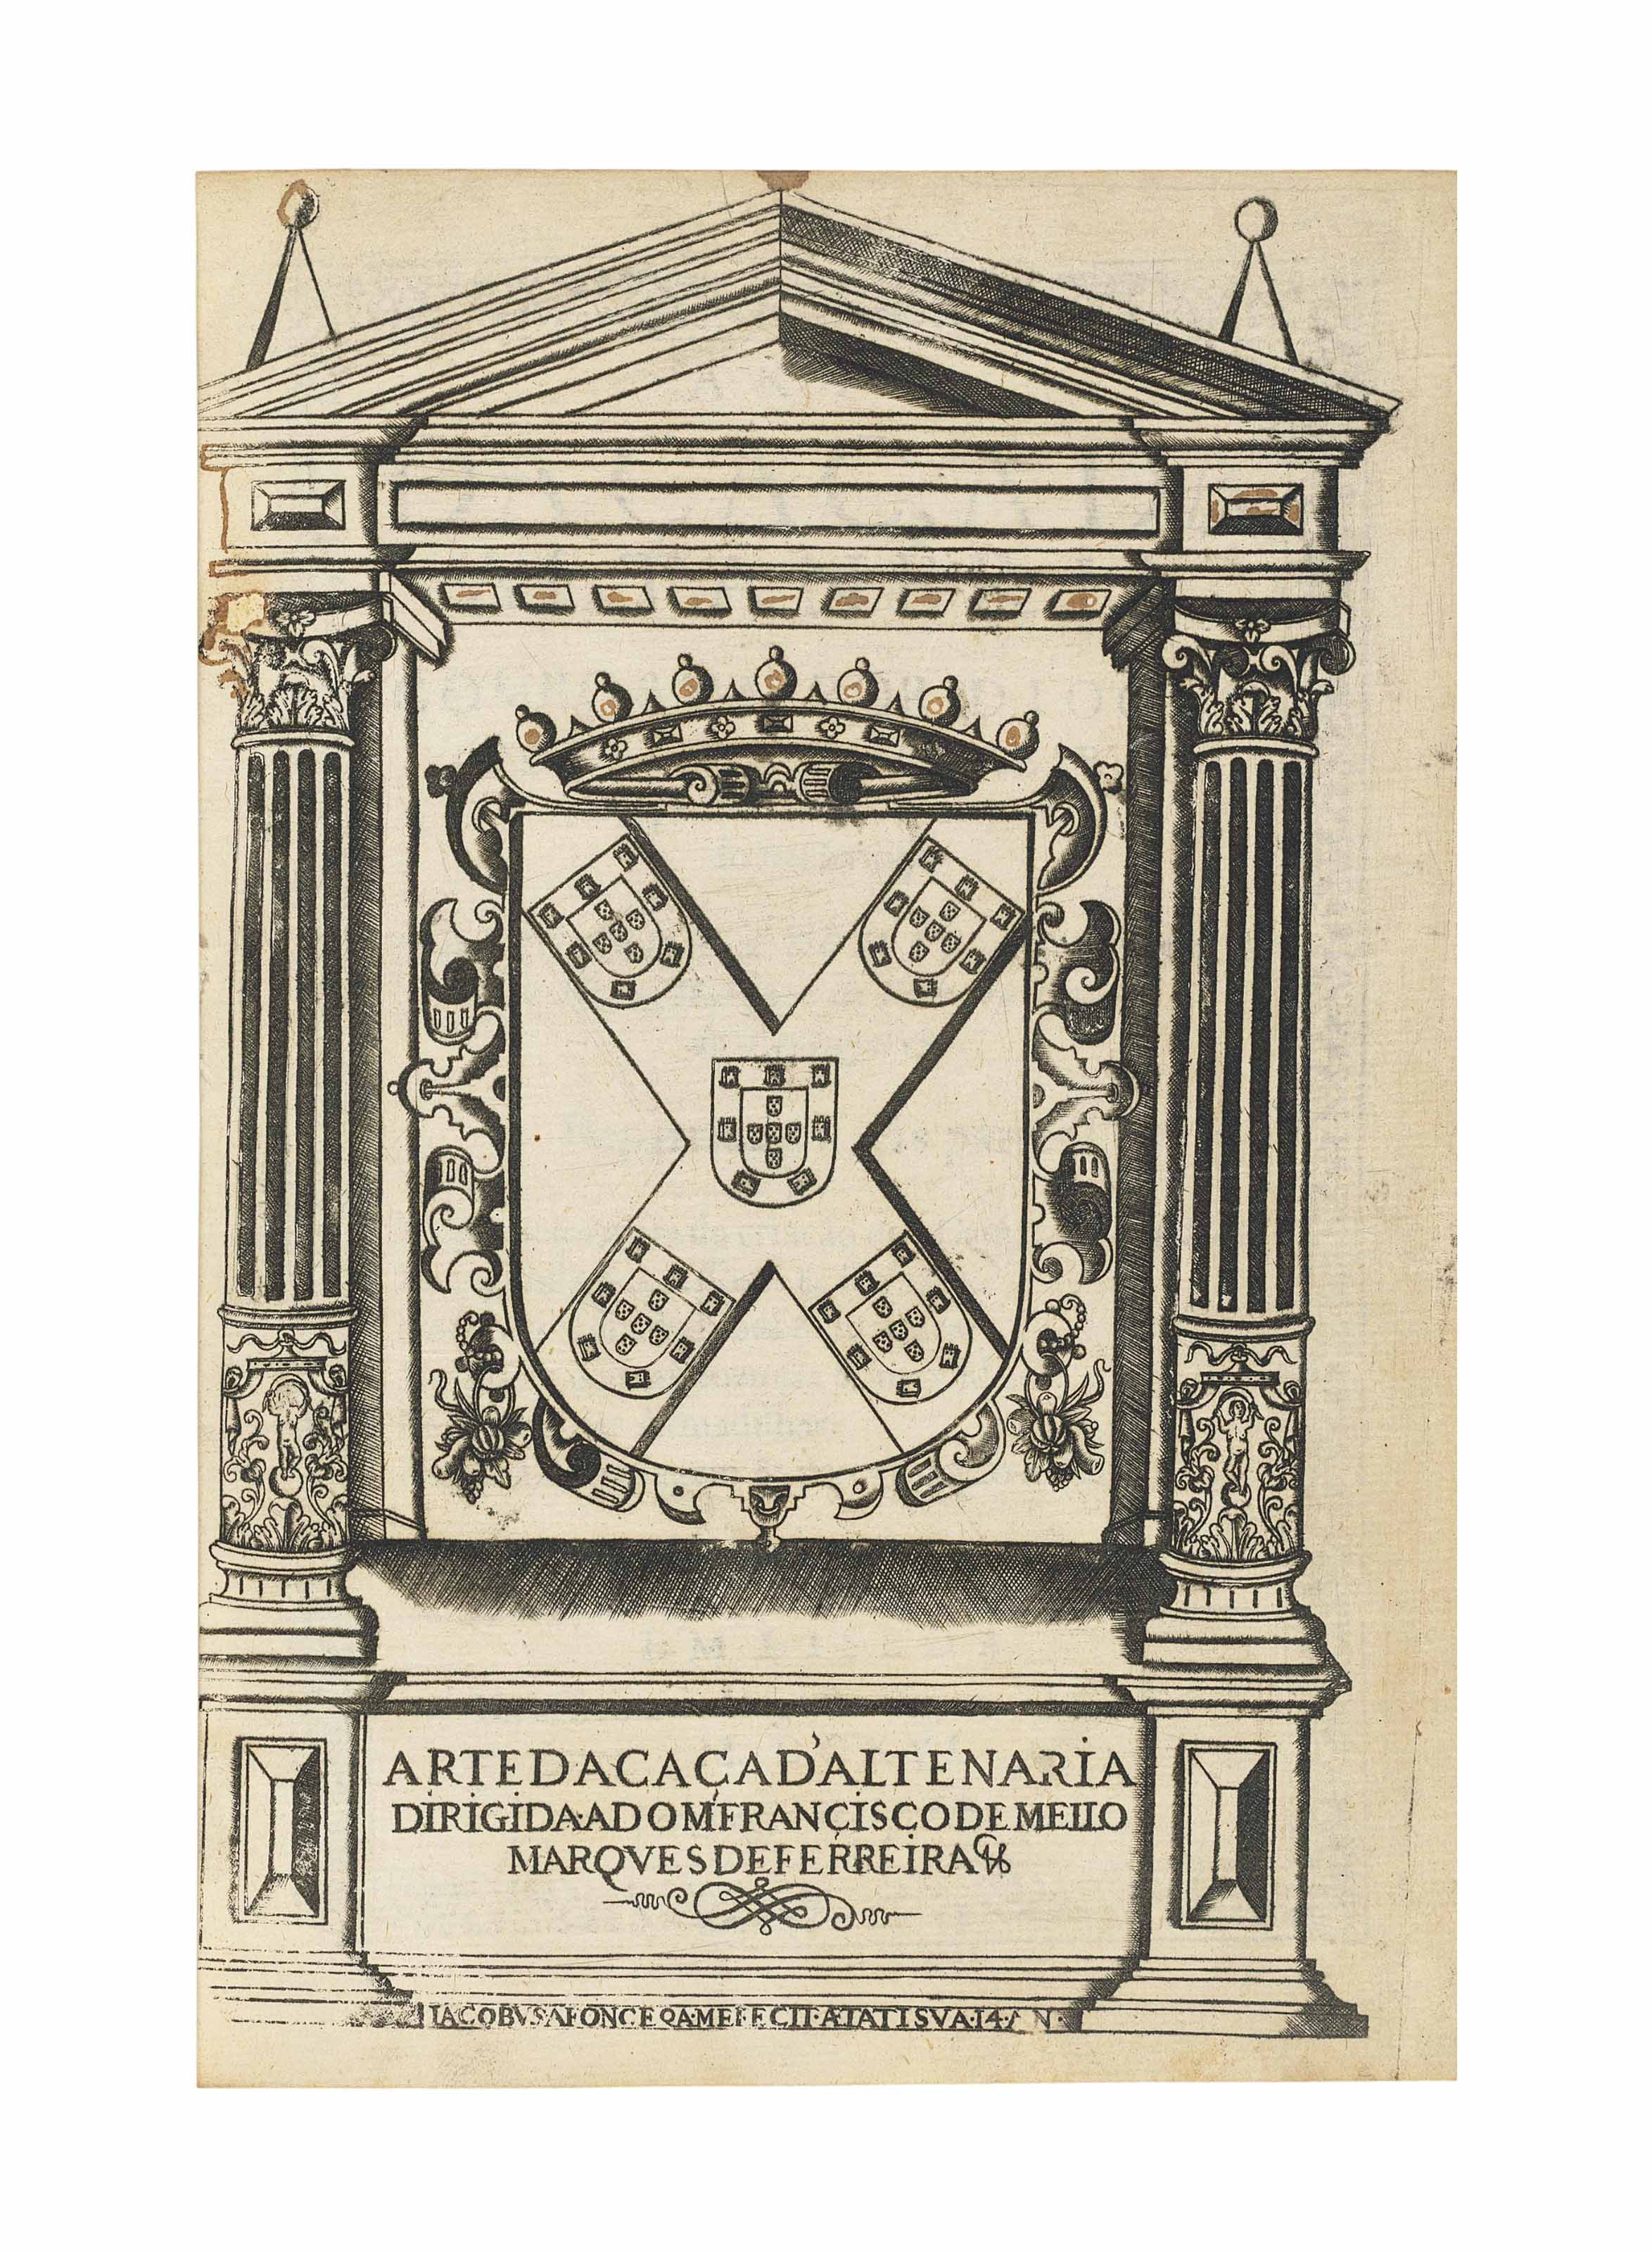 FERNANDEZ FERREIRA, Diego. Arte da caça d'altaneria. Lisbon: Jorge Rodriguez, 1616. 4° (195 x 135mm). Engraved frontispiece with arms within architectural border, title within woodcut border, woodcut initials. (Title repaired with small loss at bottom corner, light browning, a few scattered stains, tiny repair to M1 touching a letter.) Red morocco by Menard with gilt arms of the Duque de Almazan, gilt spine, turn-ins and edges (deep scuff mark to back cover). Provenance: inscription on verso of title, at end of dedication and on final leaf, a few marginal annotations – Duque de Almazan (binding) -- Joaquin M. Abaurre (bookplate).